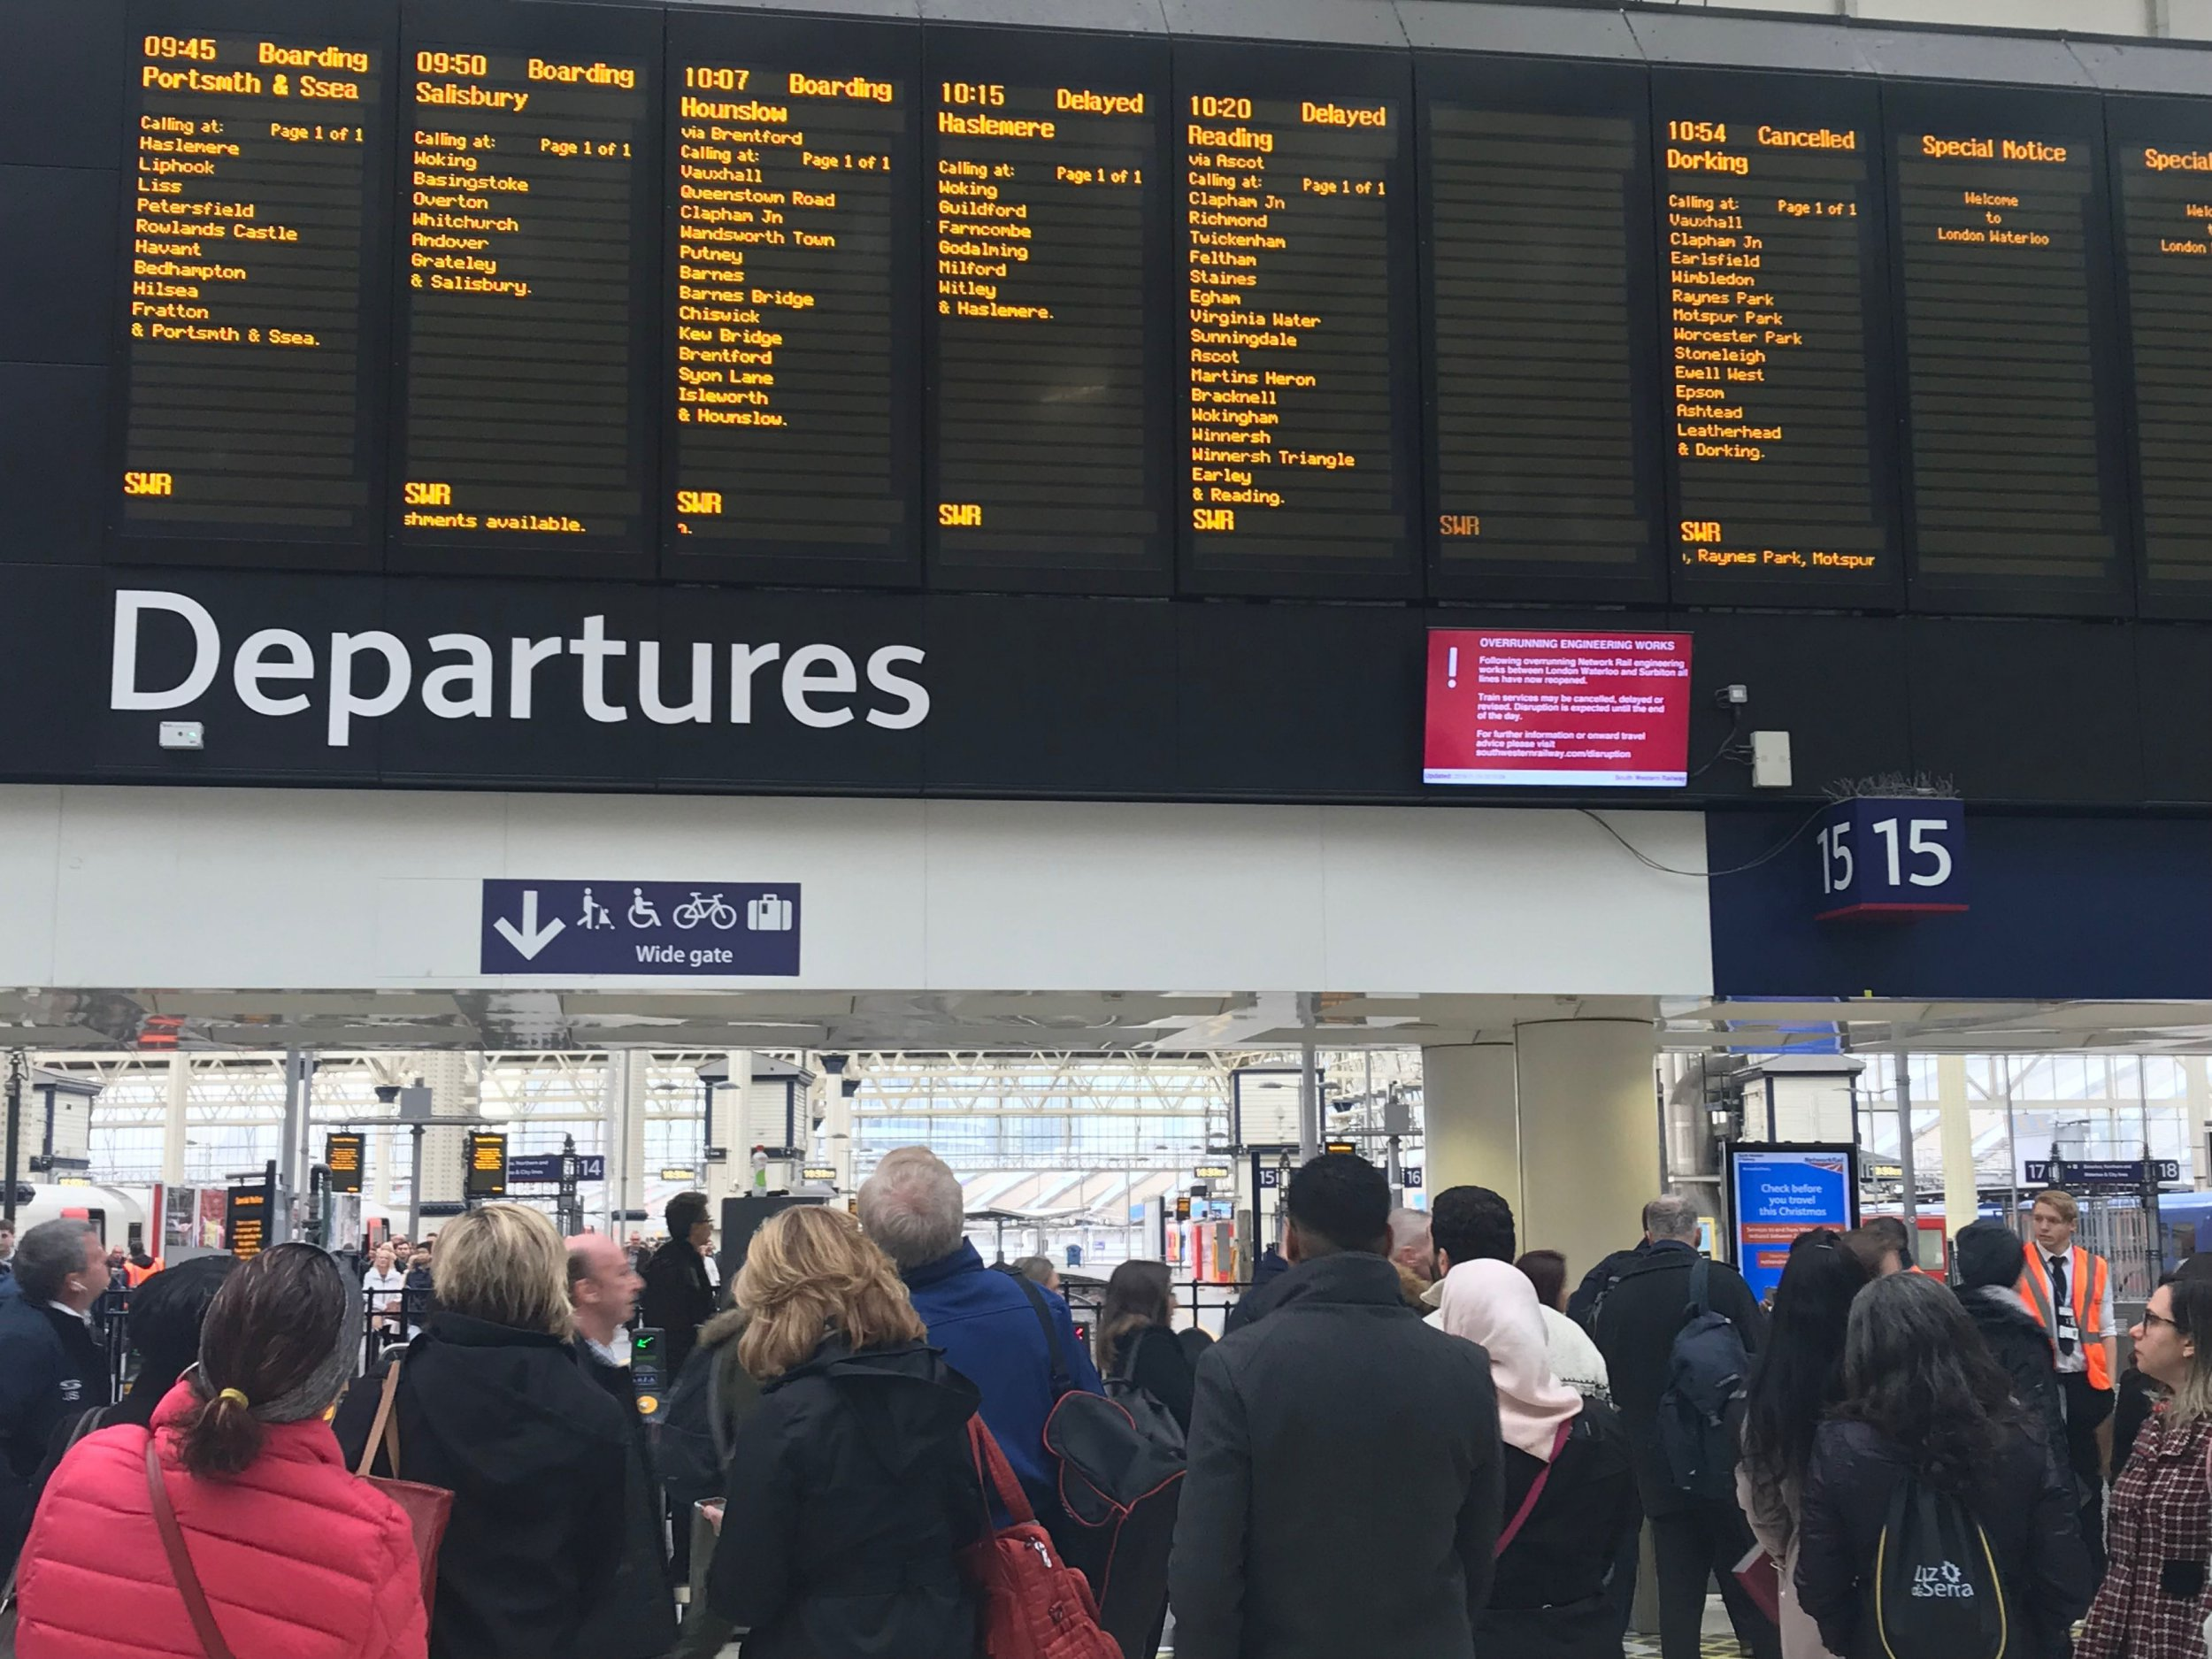 London Waterloo station this morning as passengers on some of the busiest rail routes in the country were warned of cancellations because of over-running engineering works. PRESS ASSOCIATION Photo. Picture date: Monday November 19, 2018. No South Western Railway trains were running between Surbiton and London Waterloo - the UK's busiest railway station. It is the latest disruption to hit SWR following a spate of problems involving signal and points failures. See PA story RAIL Delays. Photo credit should read: Jonathan Brady/PA Wire